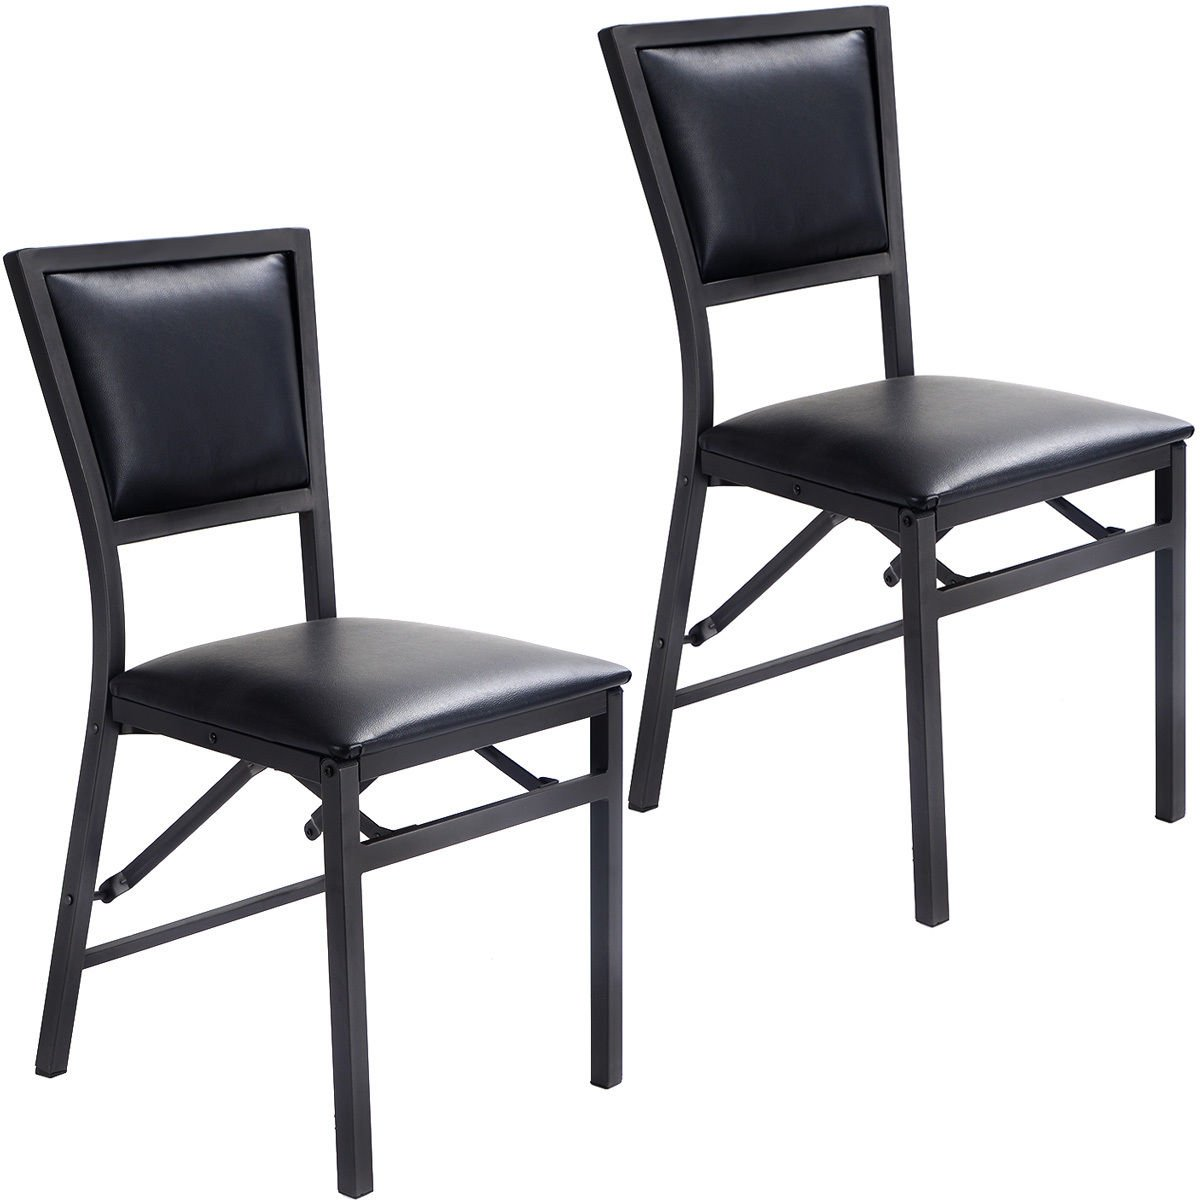 Giantex Set of 2 Metal Folding Chair Dining Chairs Home Restaurant Furniture Portable (18.1 X 15.4 X 33.3)